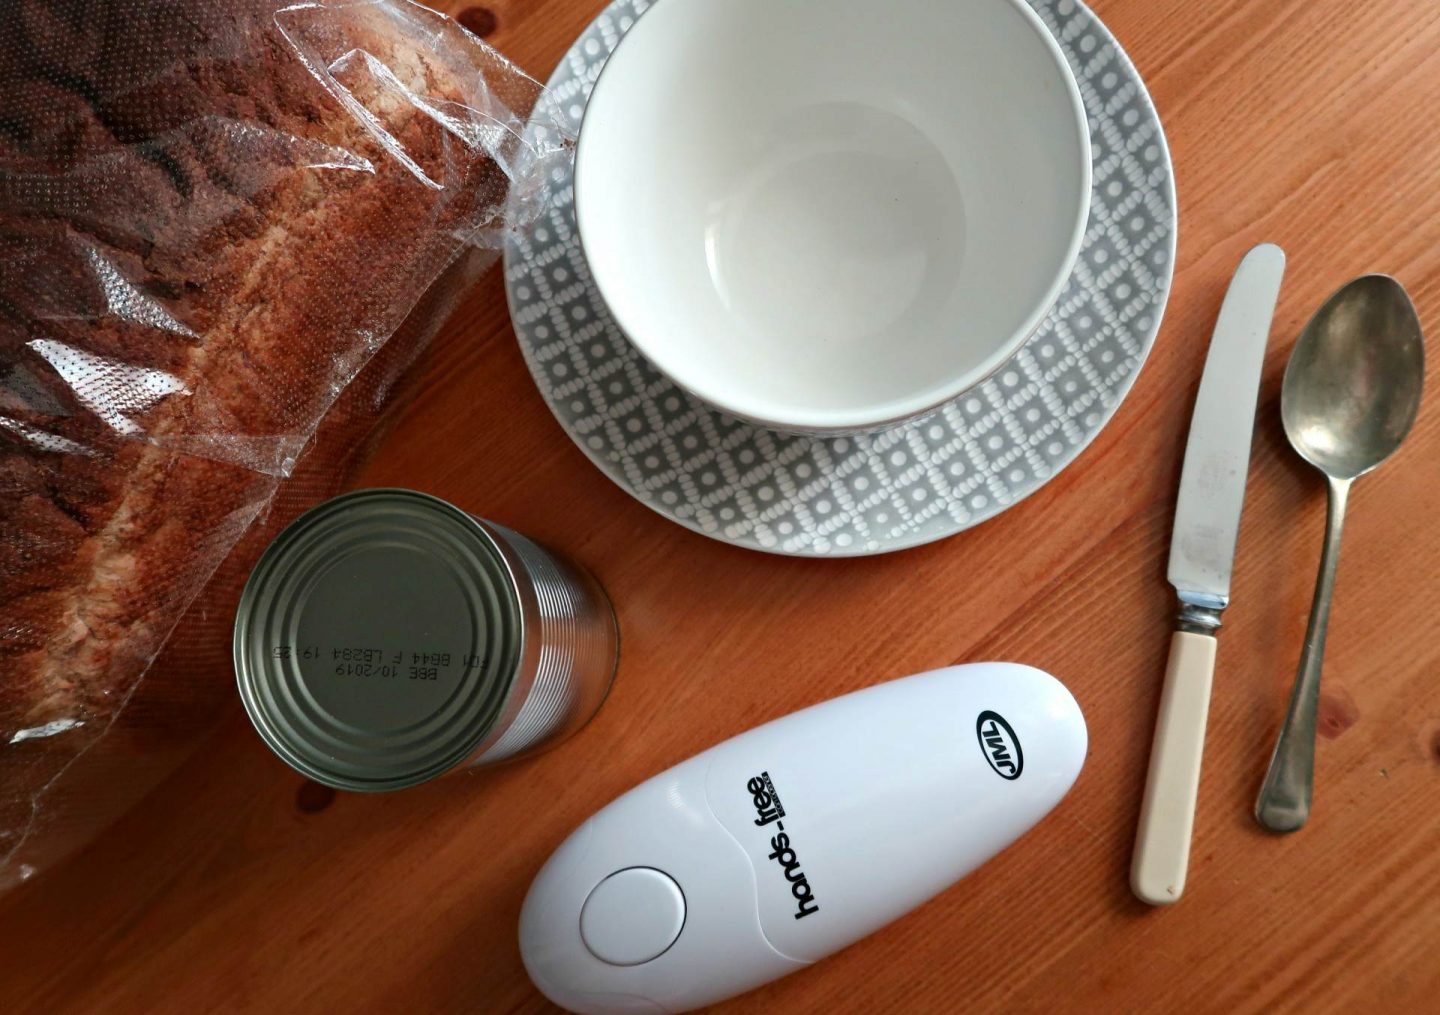 JML hands free tin opener with bread and plates